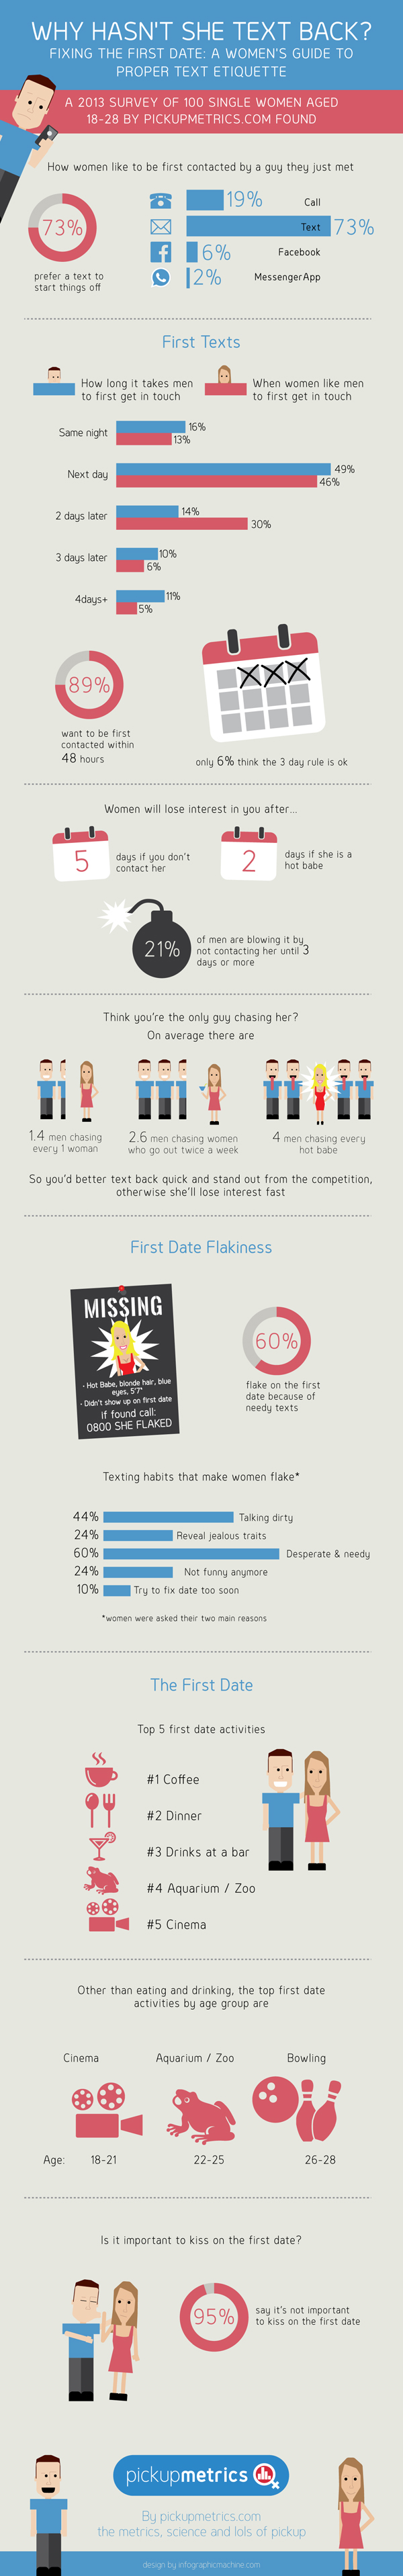 01 First-Date-Texting-Women-Infographic